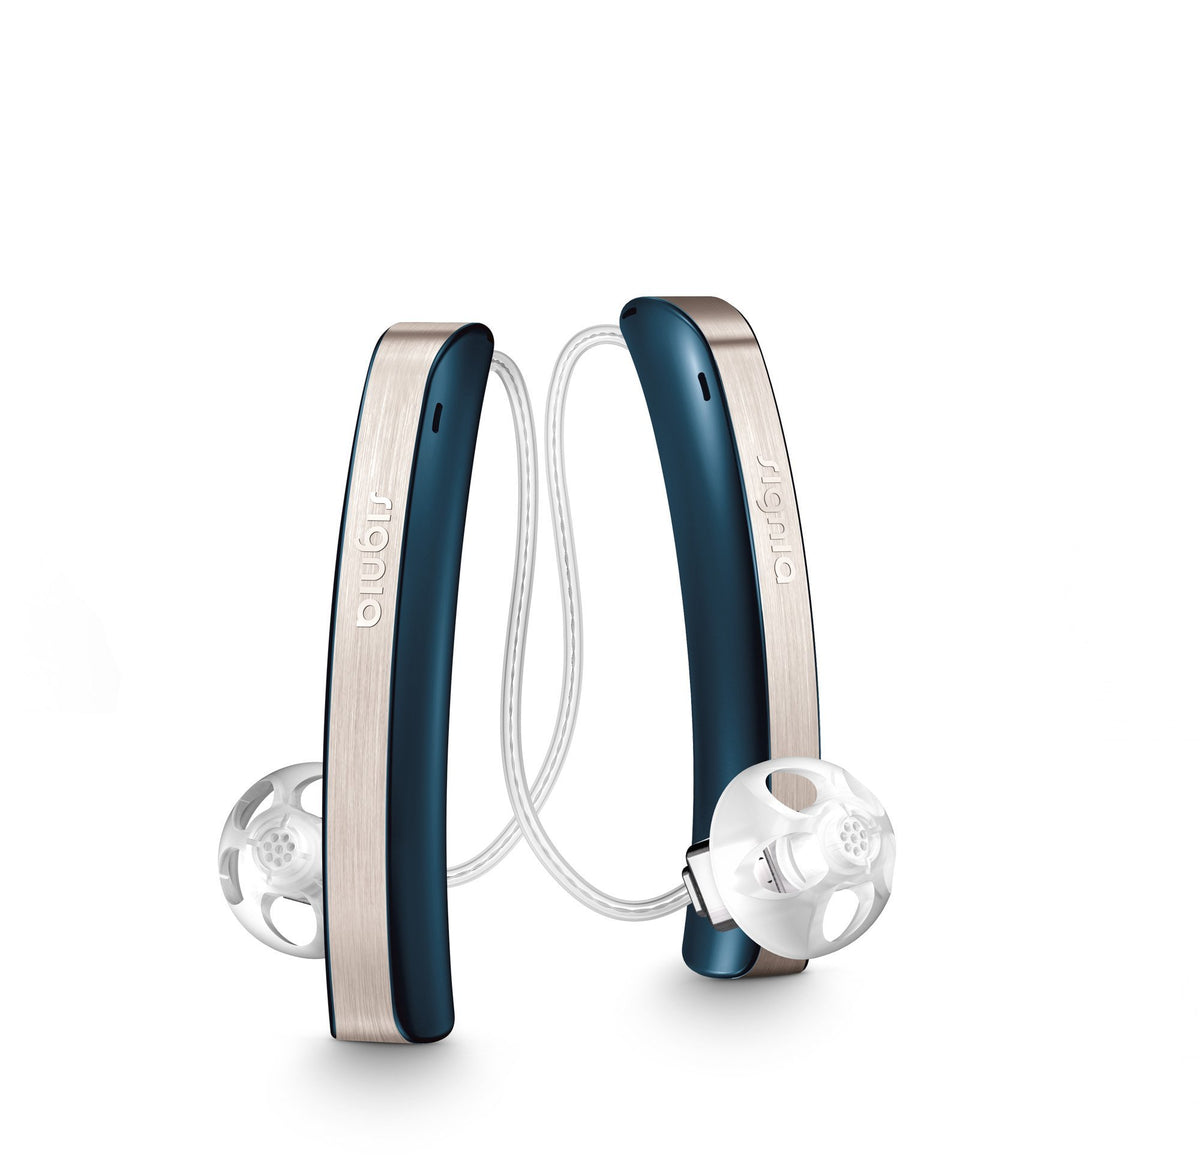 Signia Styletto Connect 7Nx-PAIR - ion hearing